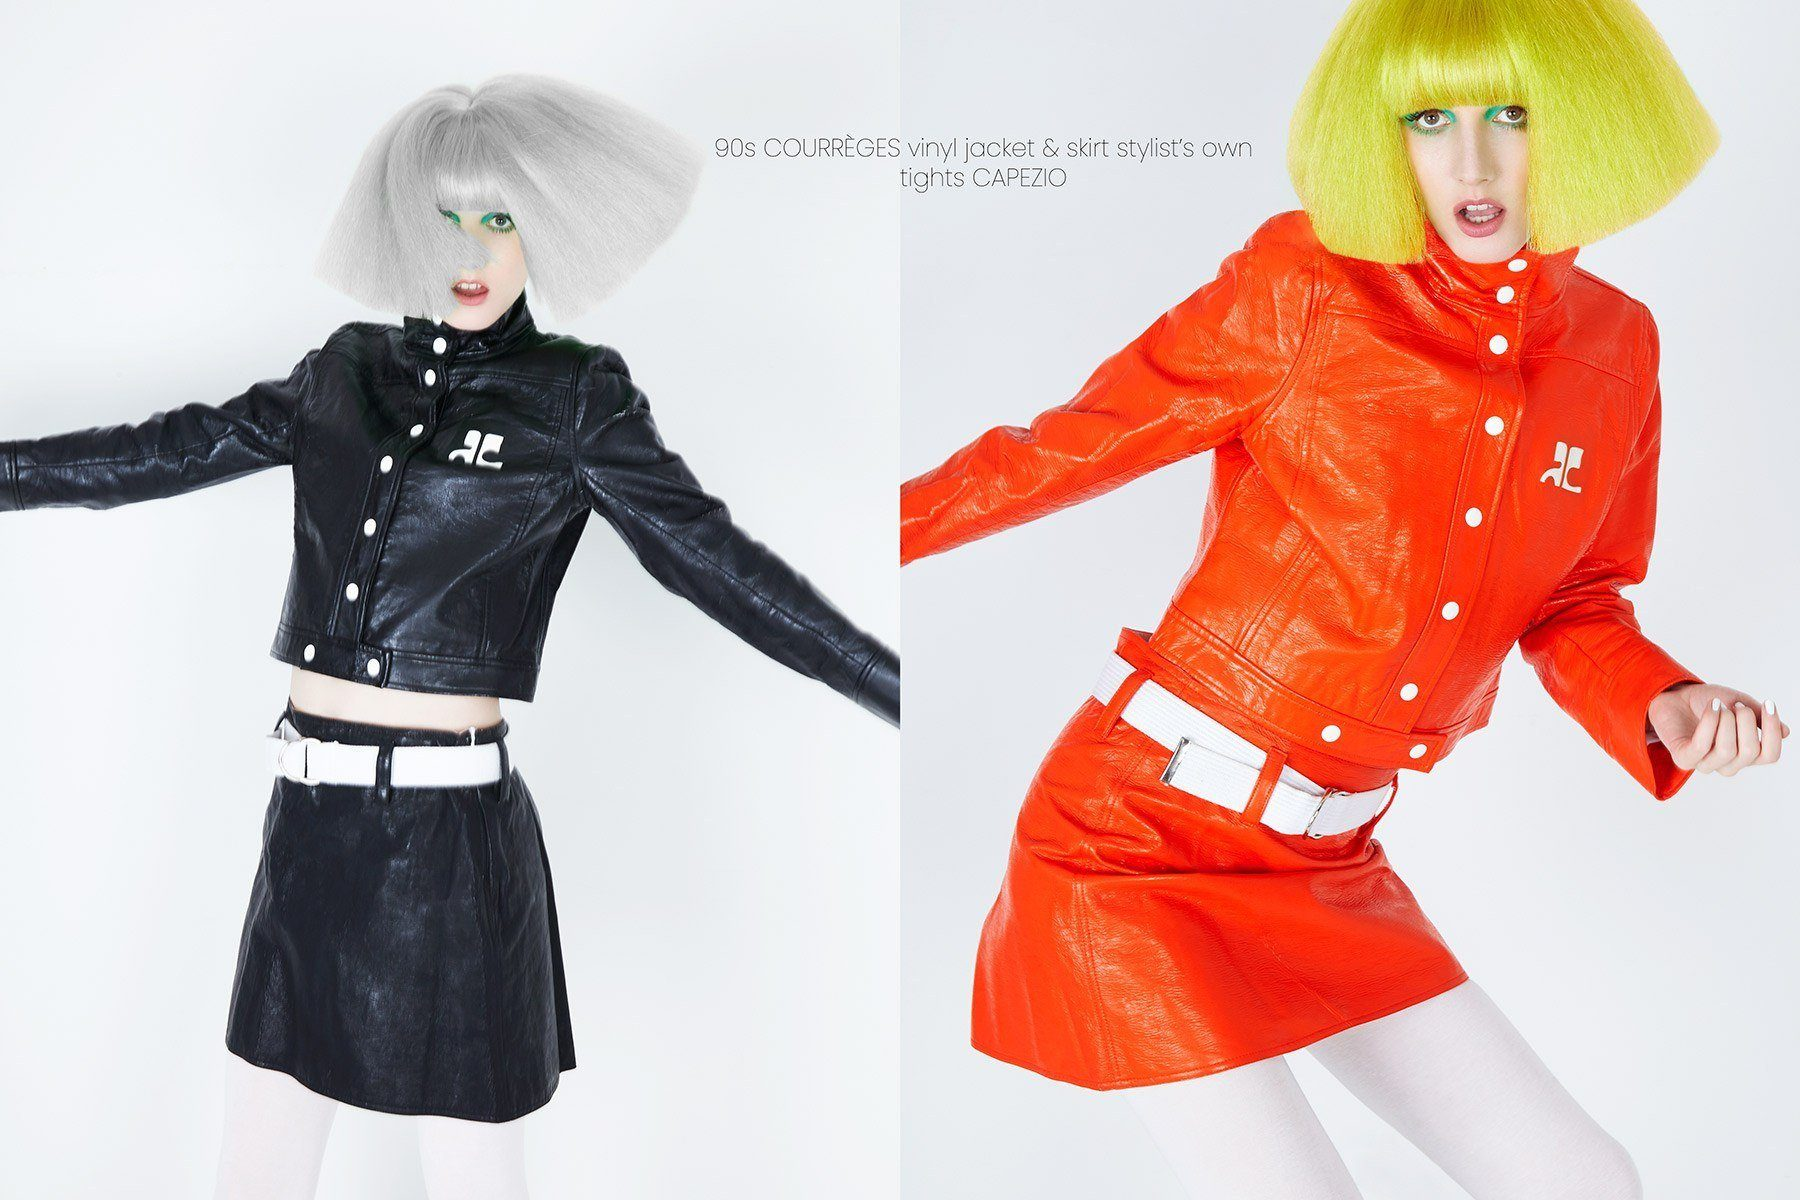 Stella Rose Saint Clair wears a vintage Courrèges vinyl suit. Photographed by Alexander Thompson for Ponyboy magazine.